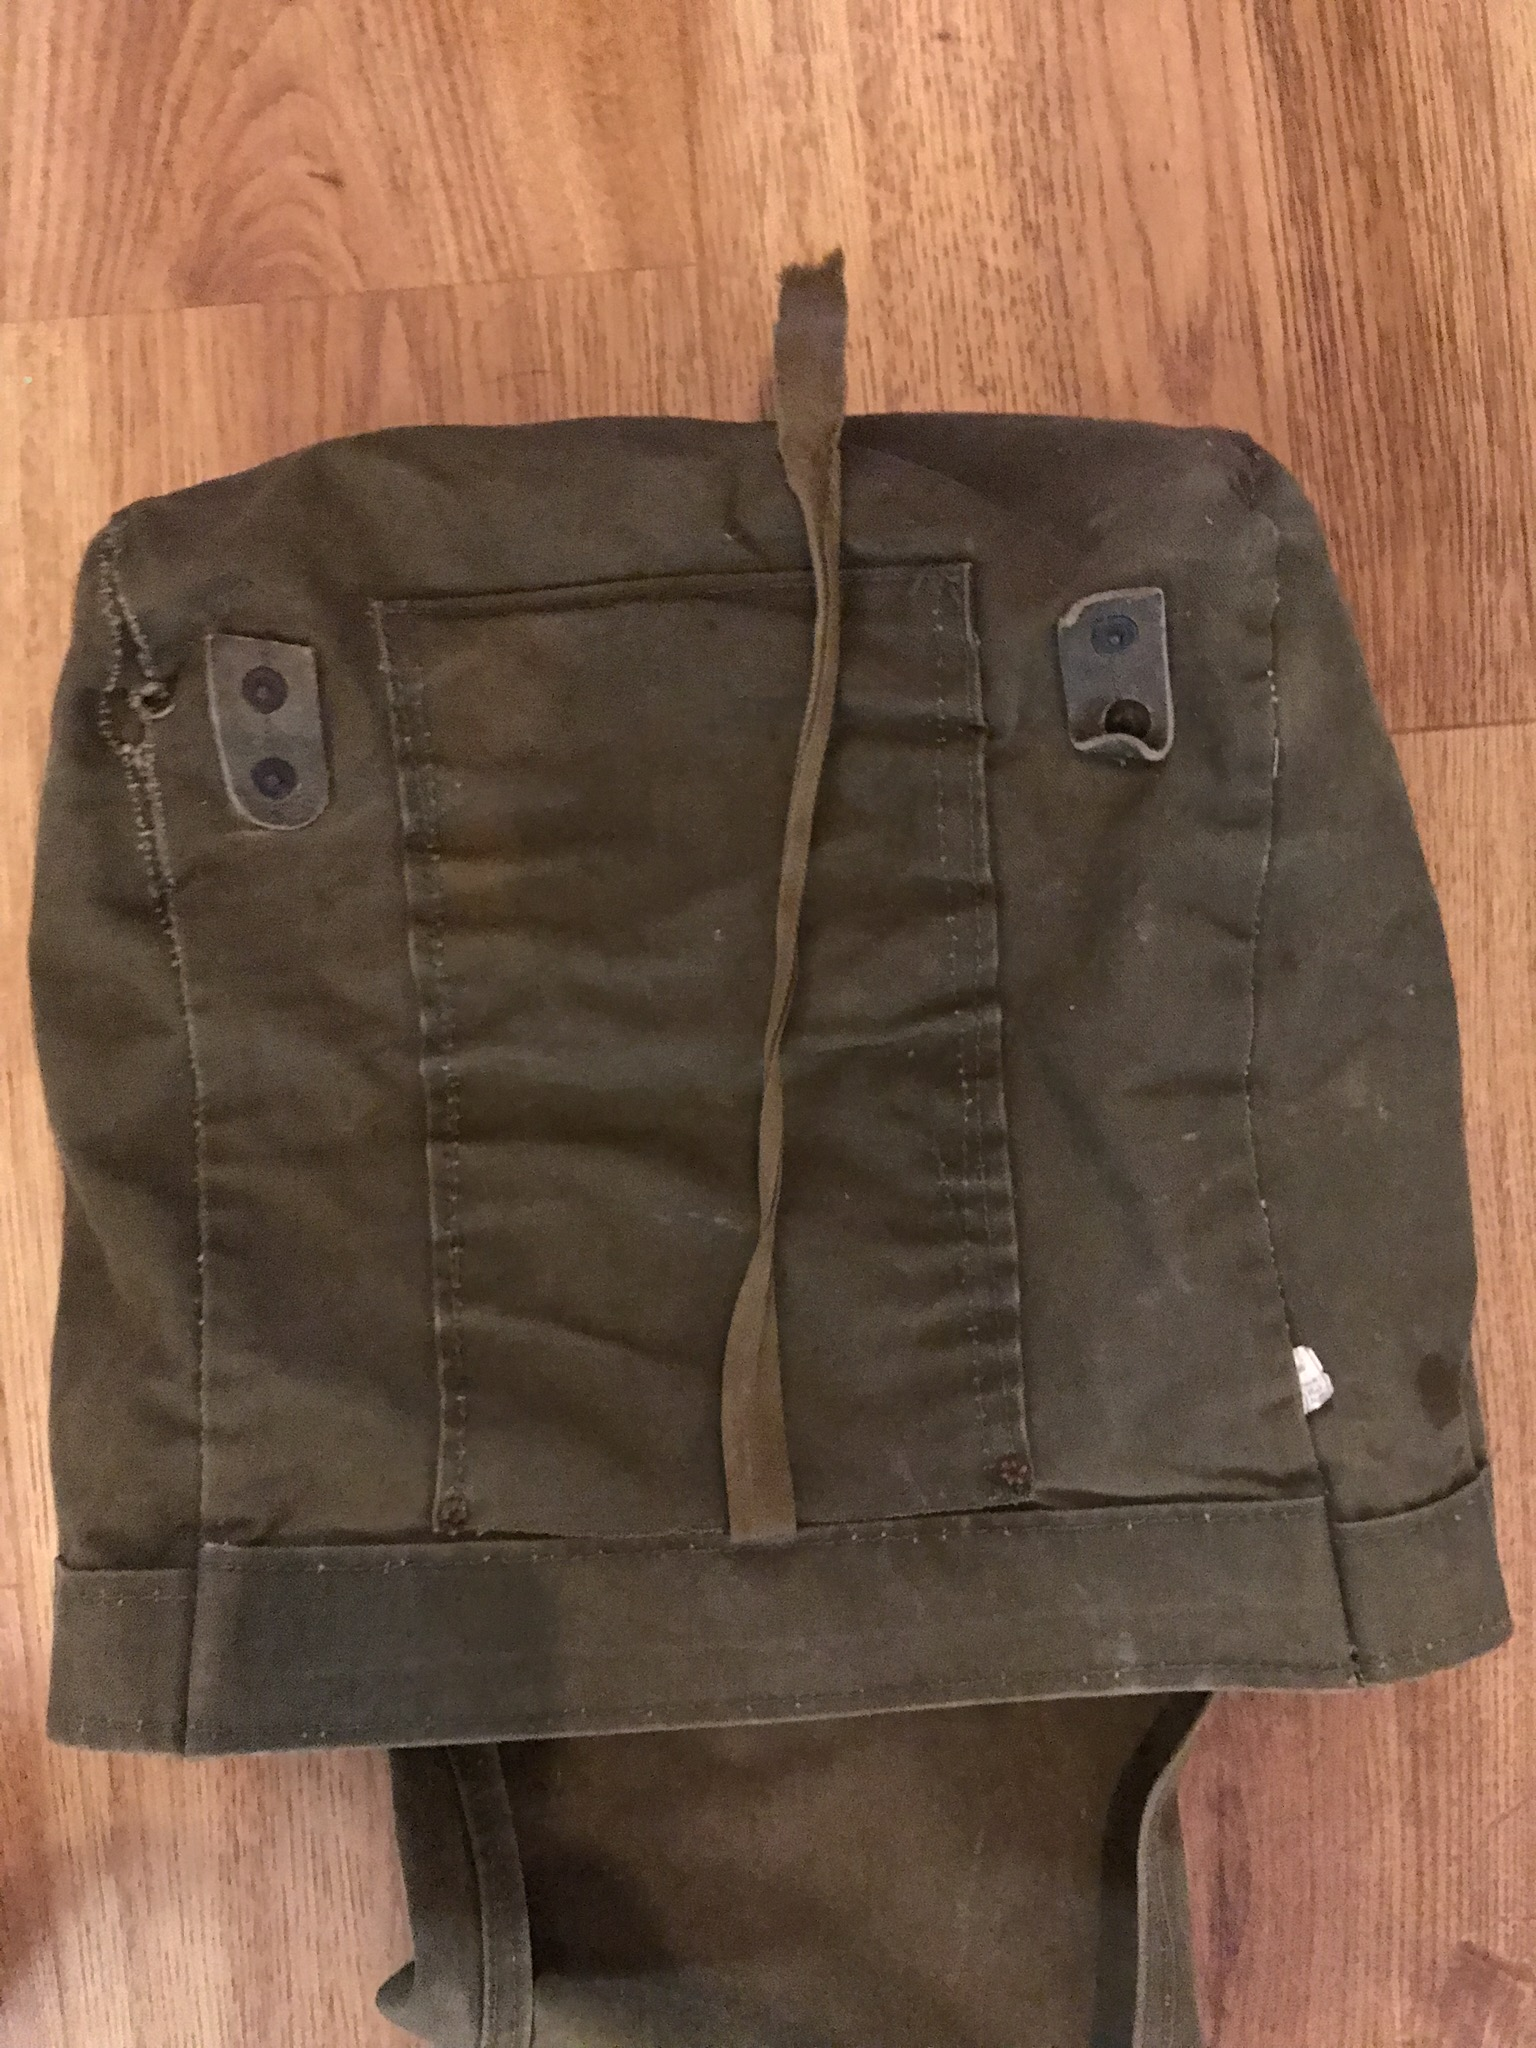 Picture of Find an Old Backpack in a Style You Want to Make